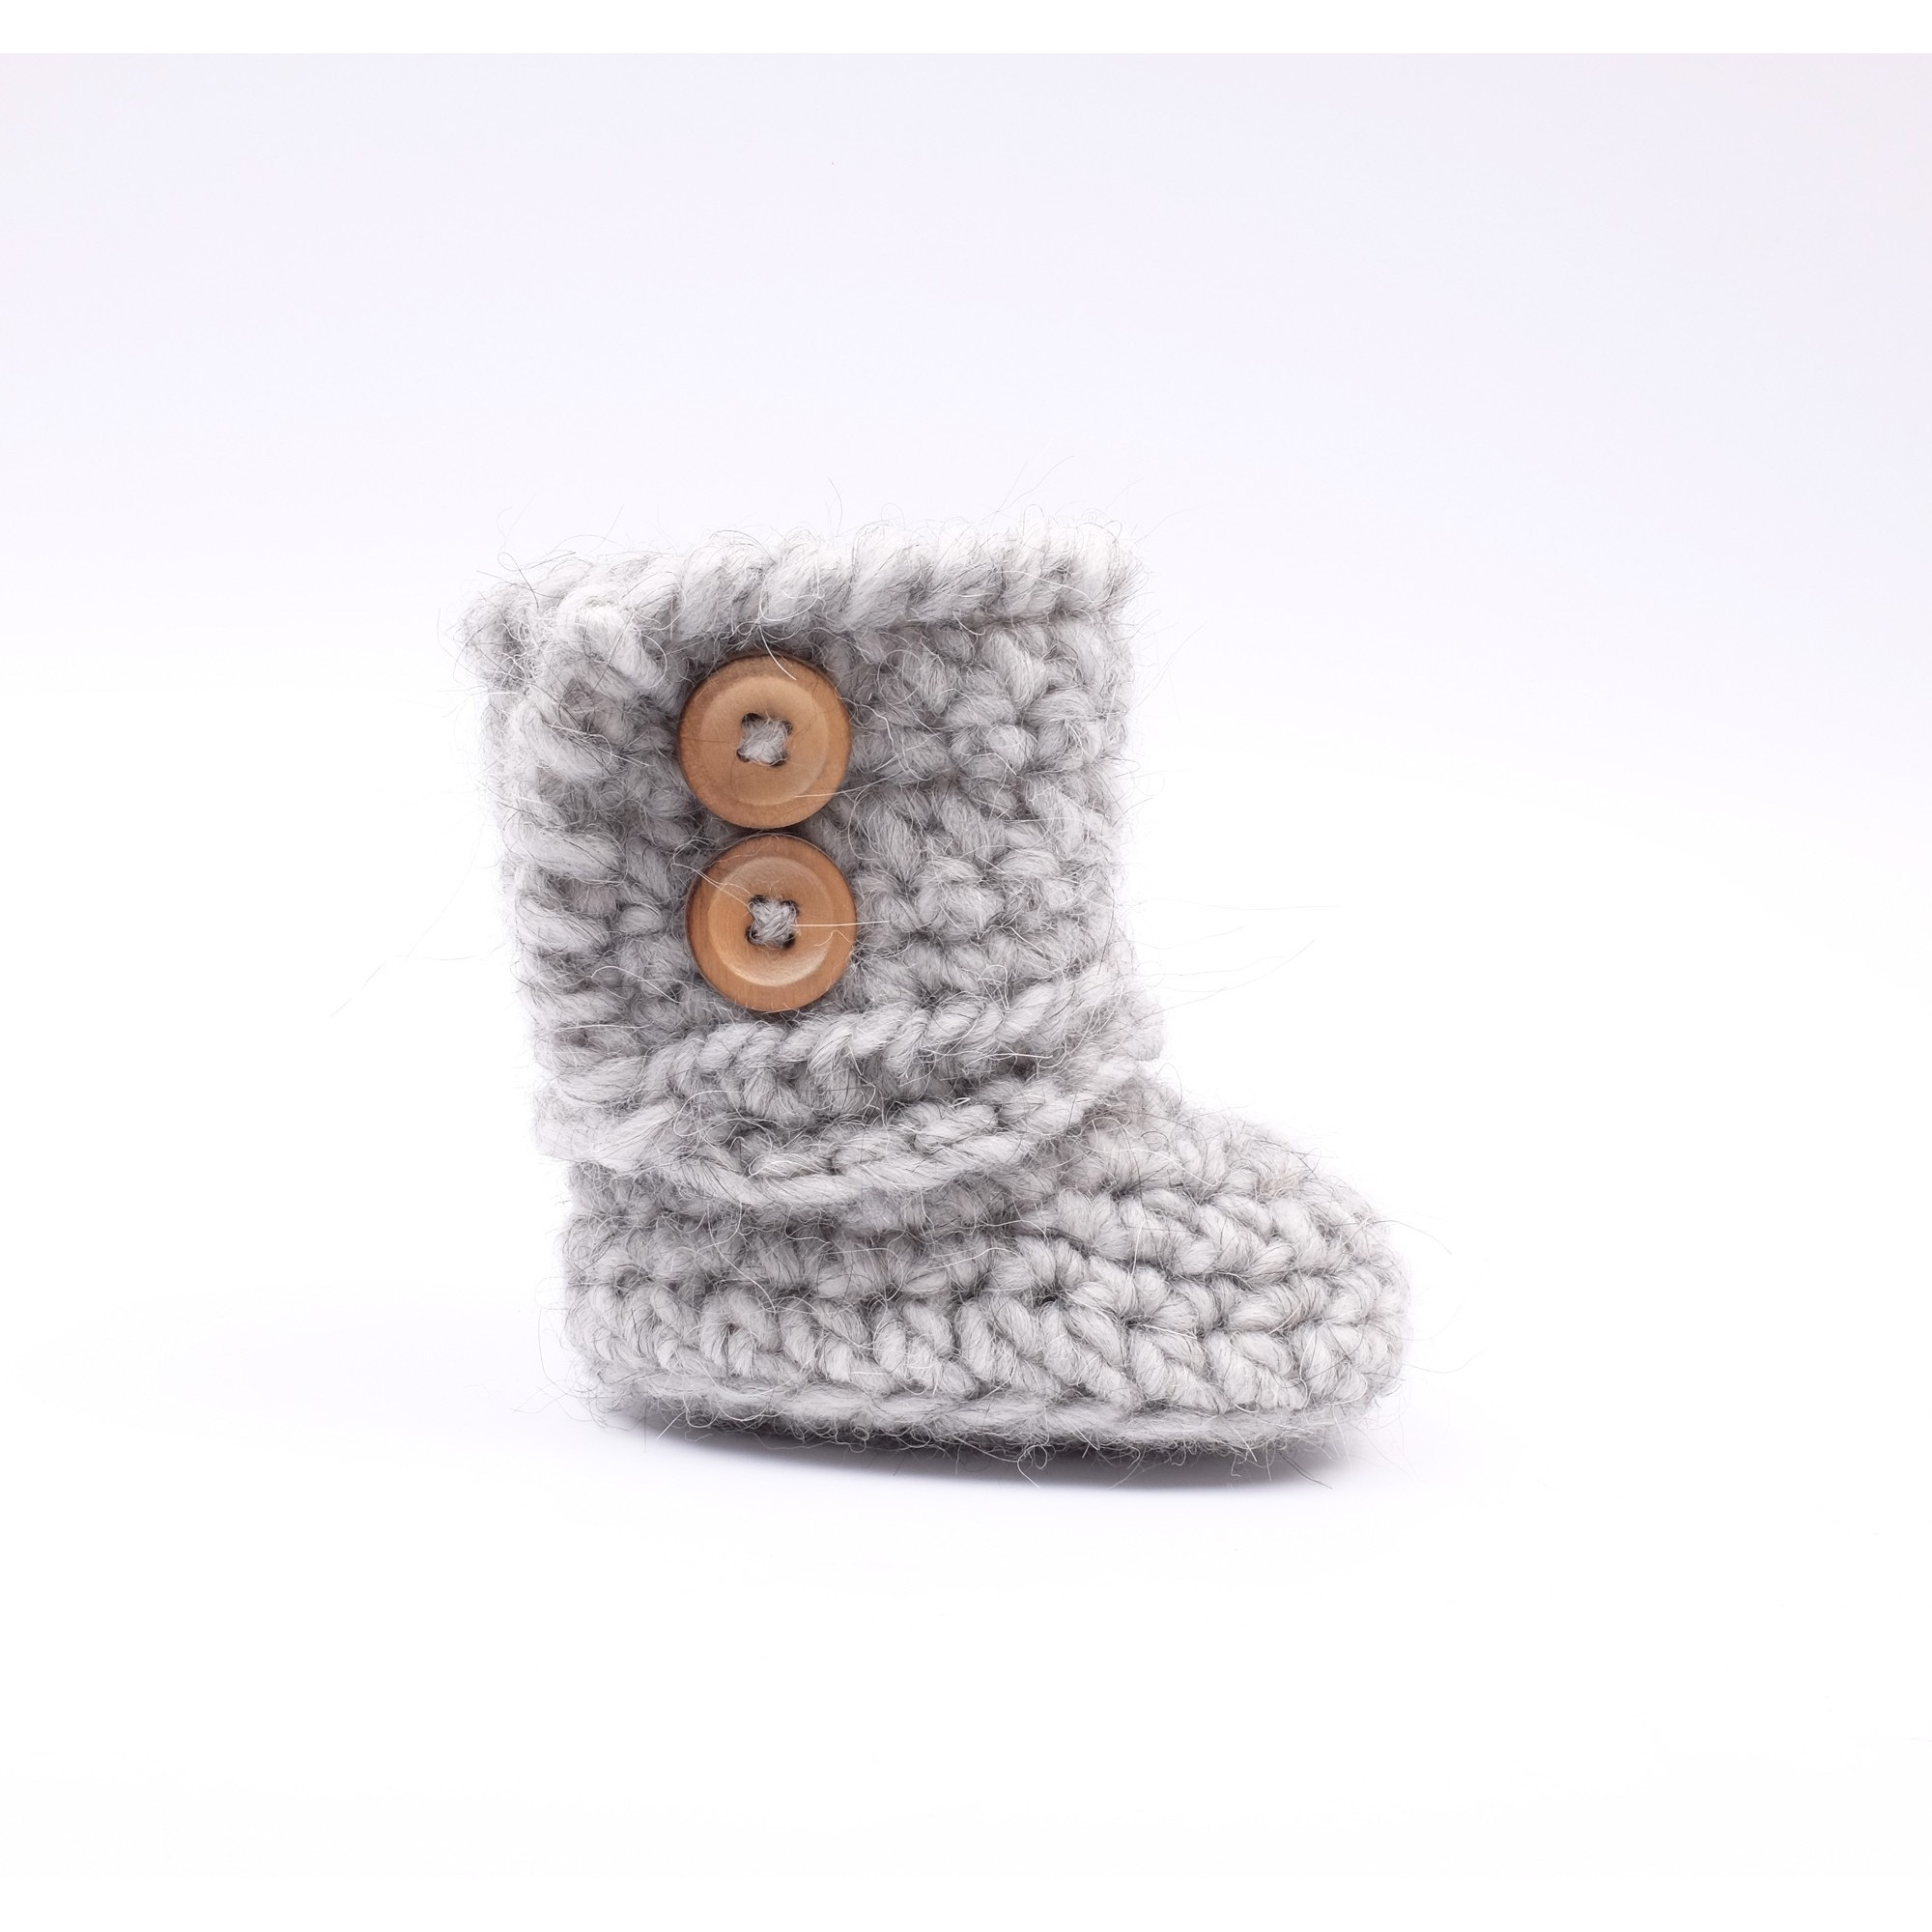 Célestine boot for baby - grey color - right side